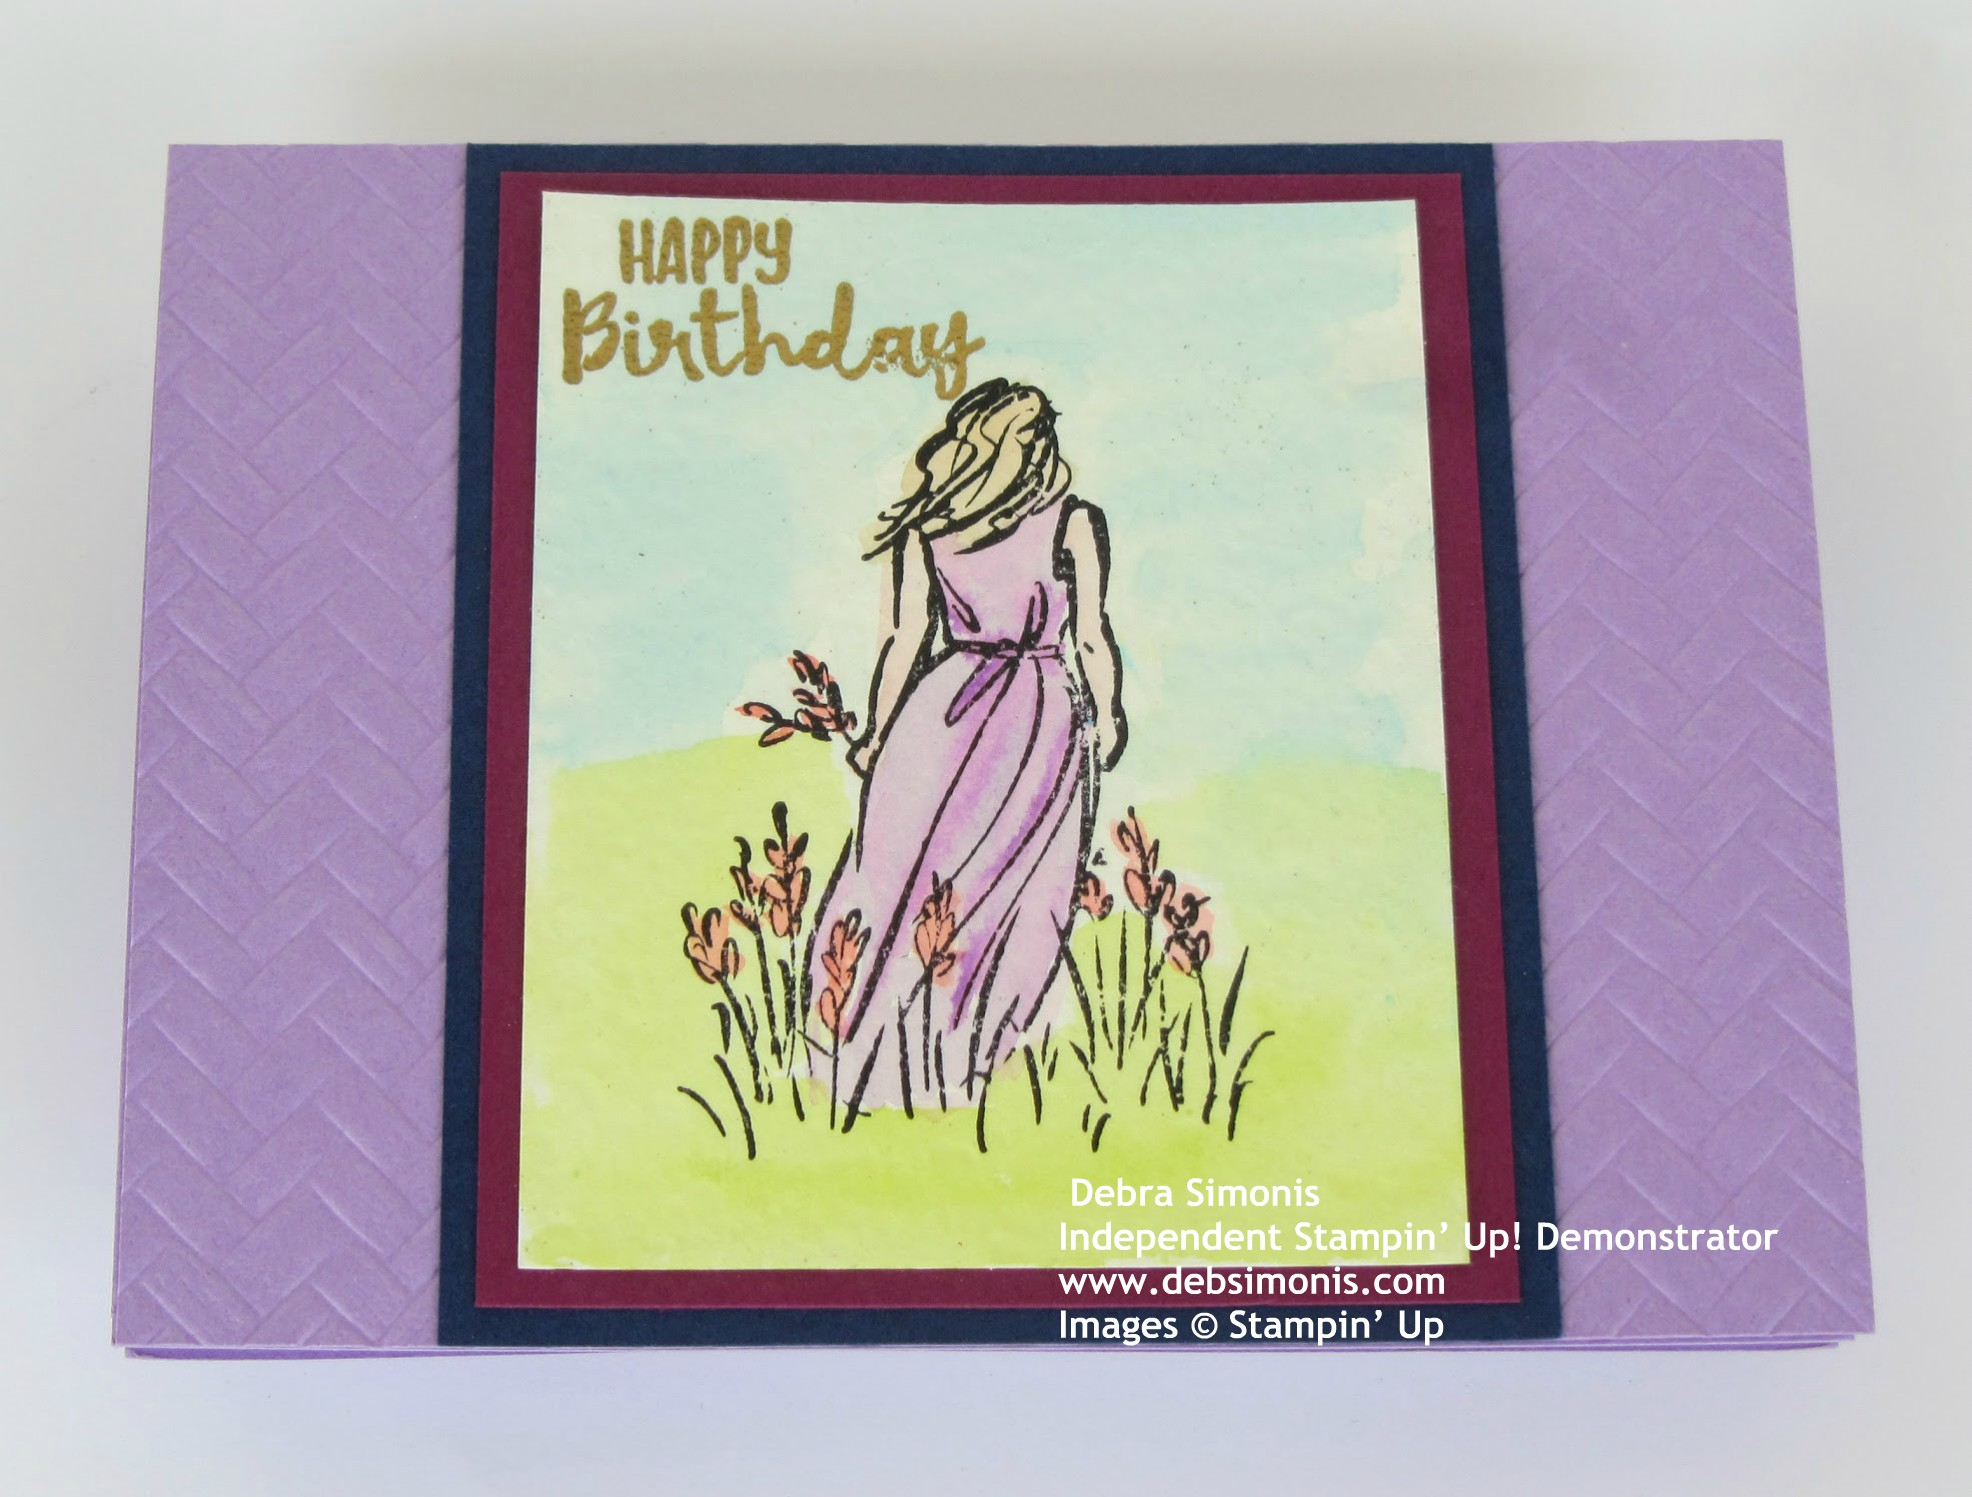 Stampin-Up-Beautiful-Moments-stamp-set-Sending-You-Thoughts-Coastal-Weave-Embossing-Folder-Watercolor-technique-Heat-Embossing-birthday-card-Debra-Simonis-Stampinup